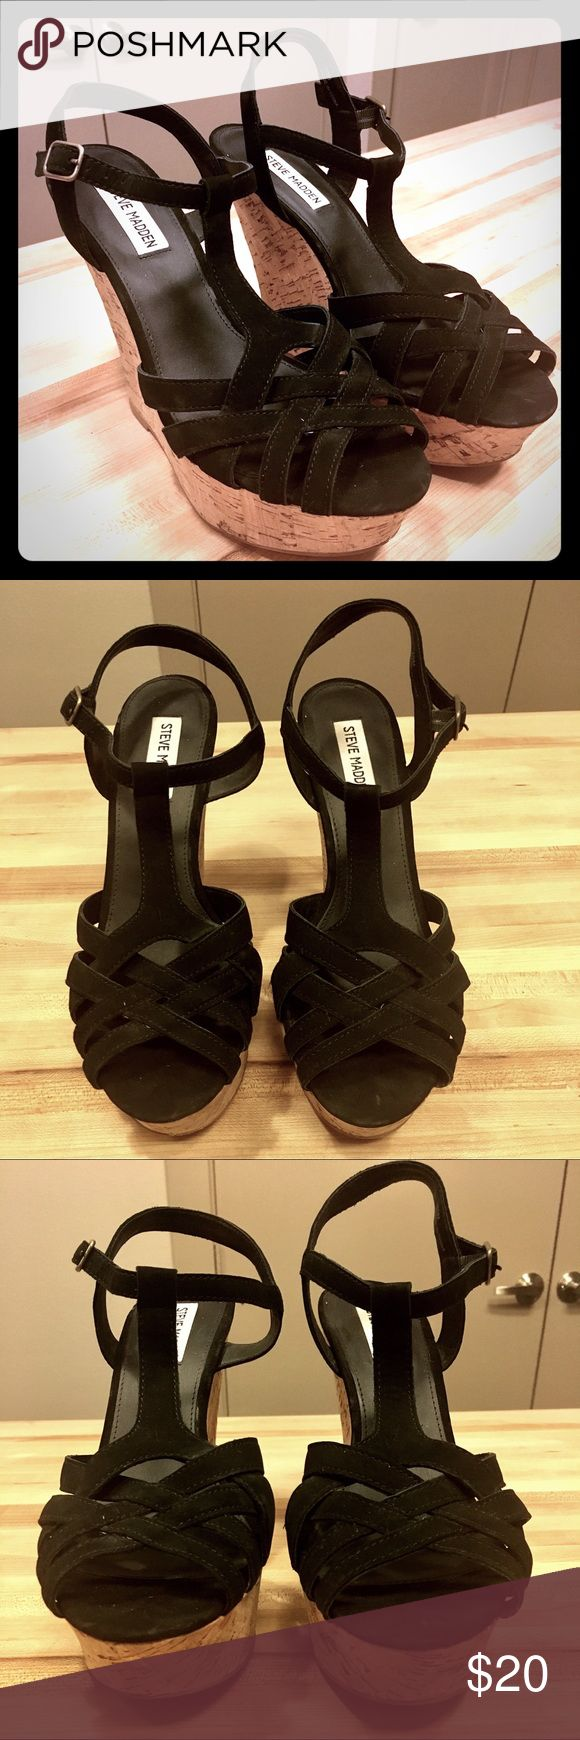 """Steve Madden Strappy Black Wedges Steve Madden """"Wildness"""" Wedges heels in size 10M. The heel is 5.5"""". They have been worn once and have scuffing on the soles but no other signs of wear. Steve Madden Shoes Wedges"""